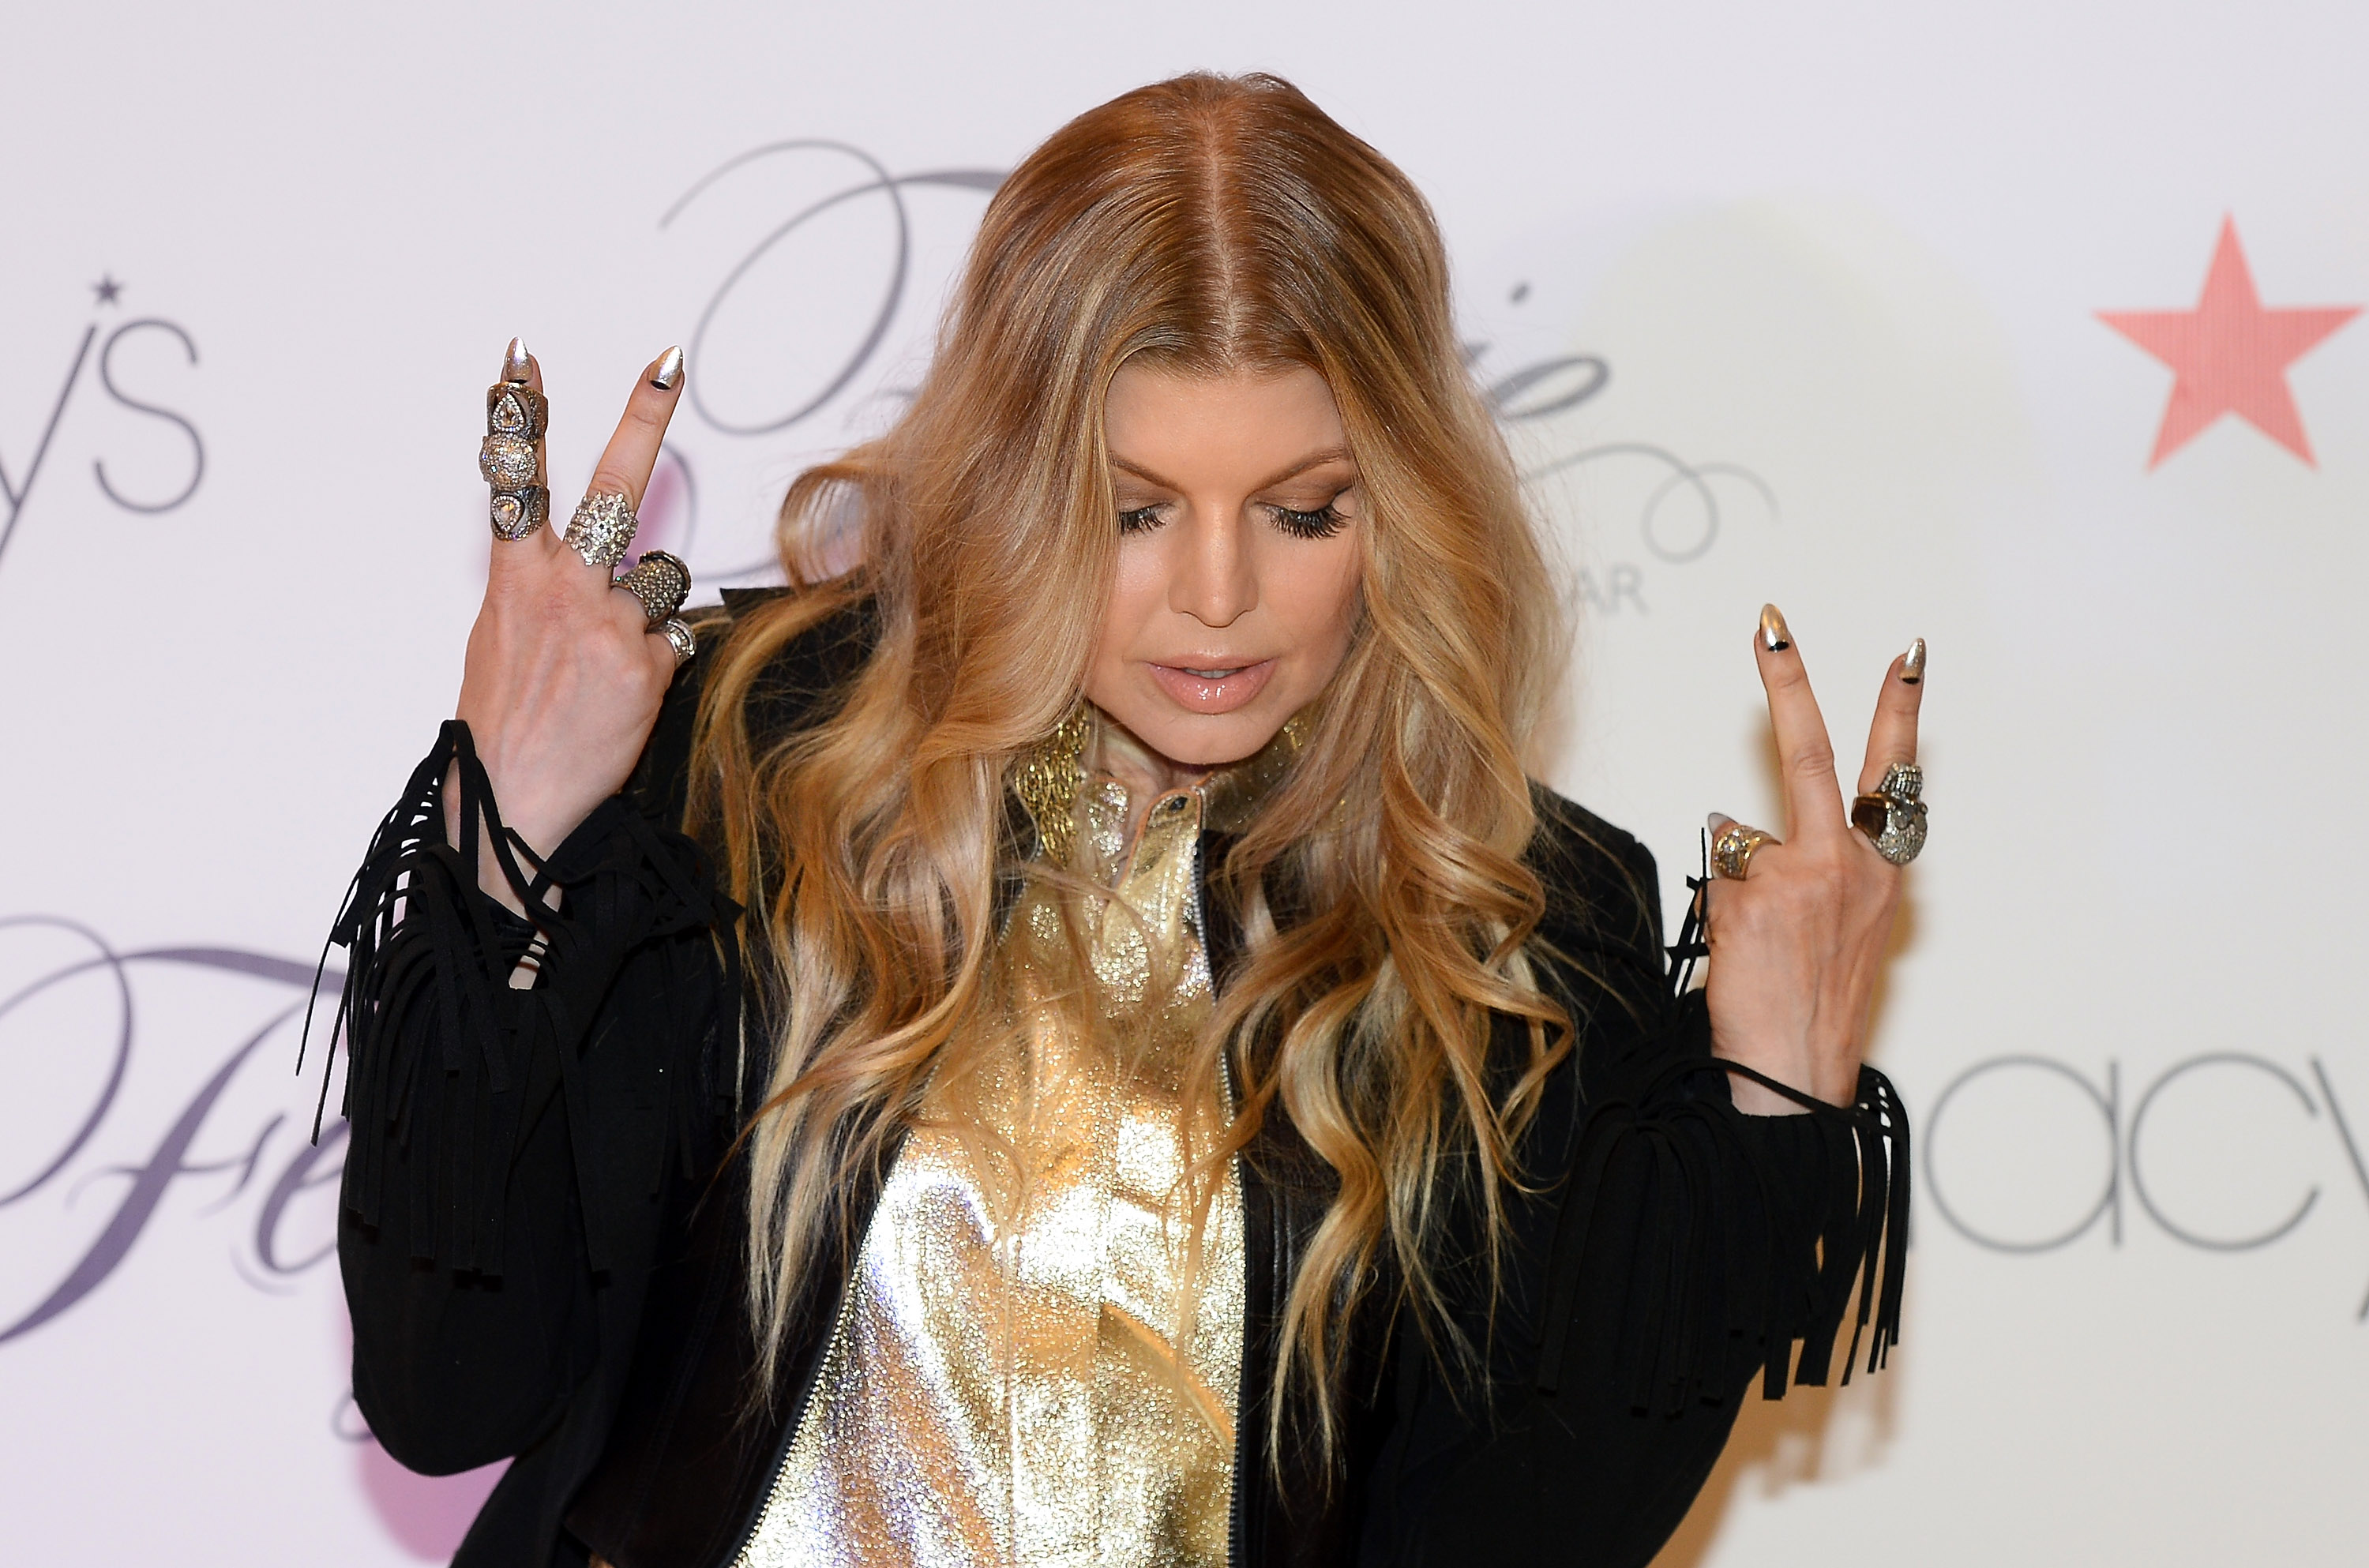 Singer Fergie Duhamel appears at Macy's at the Fashion Show